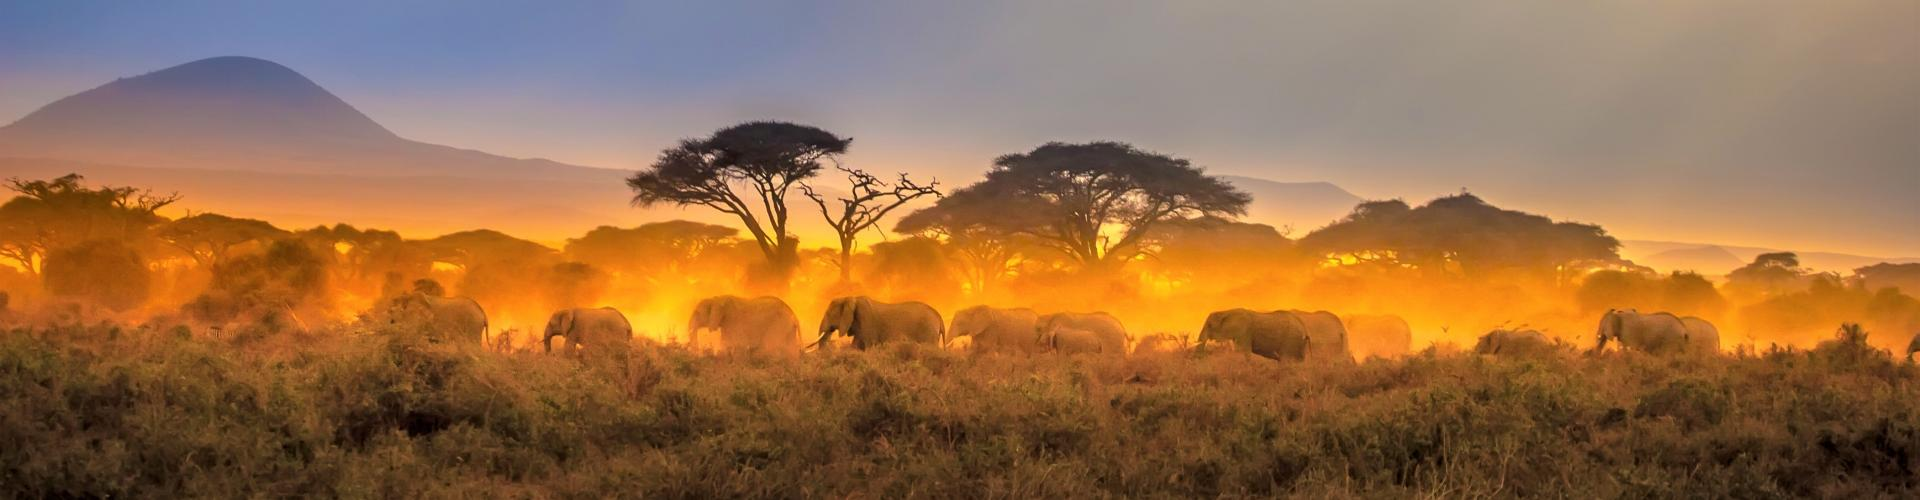 Migration of elephants. Herd of elephants. Evening in the African savannah. 2